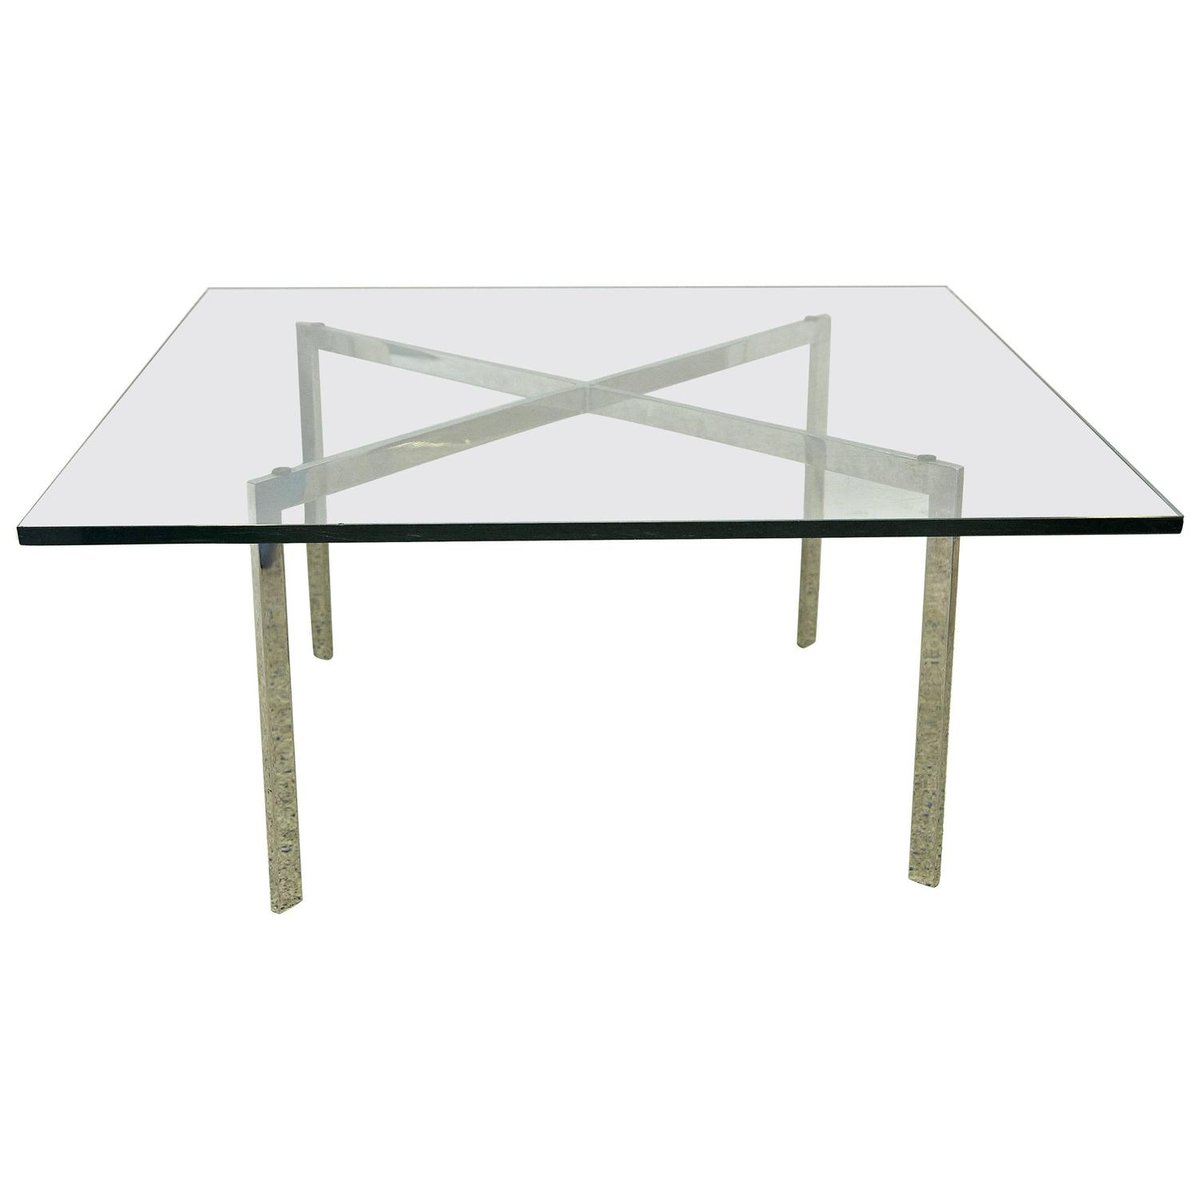 barcelona table by mies van der rohe for knoll 1960s for sale at pamono. Black Bedroom Furniture Sets. Home Design Ideas